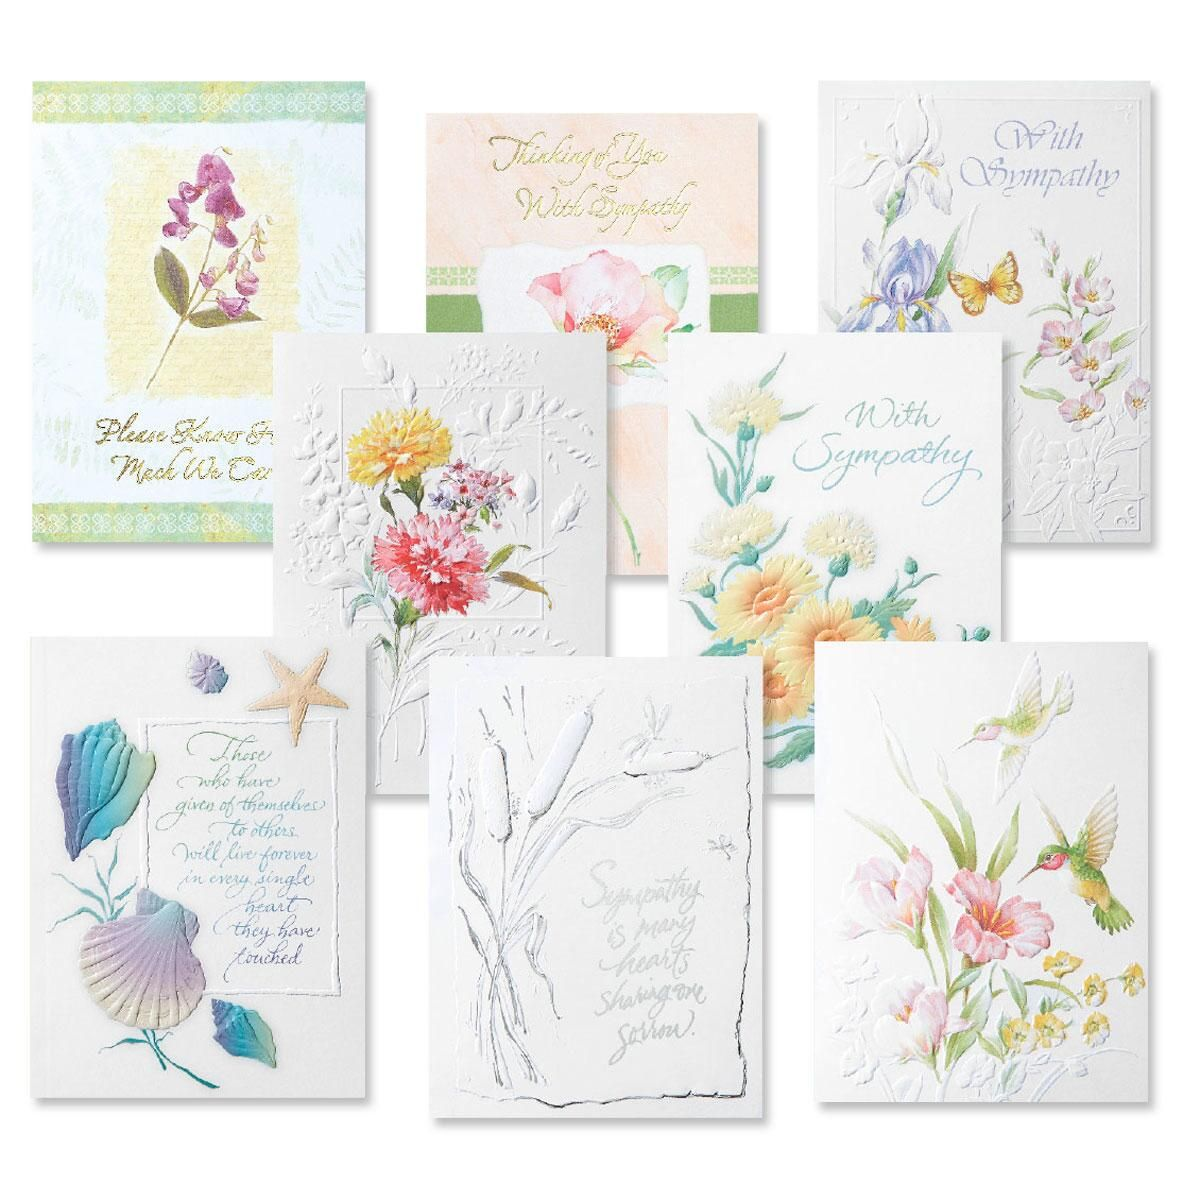 Sympathy Cards Sympathy Greeting Cards Current Catalog